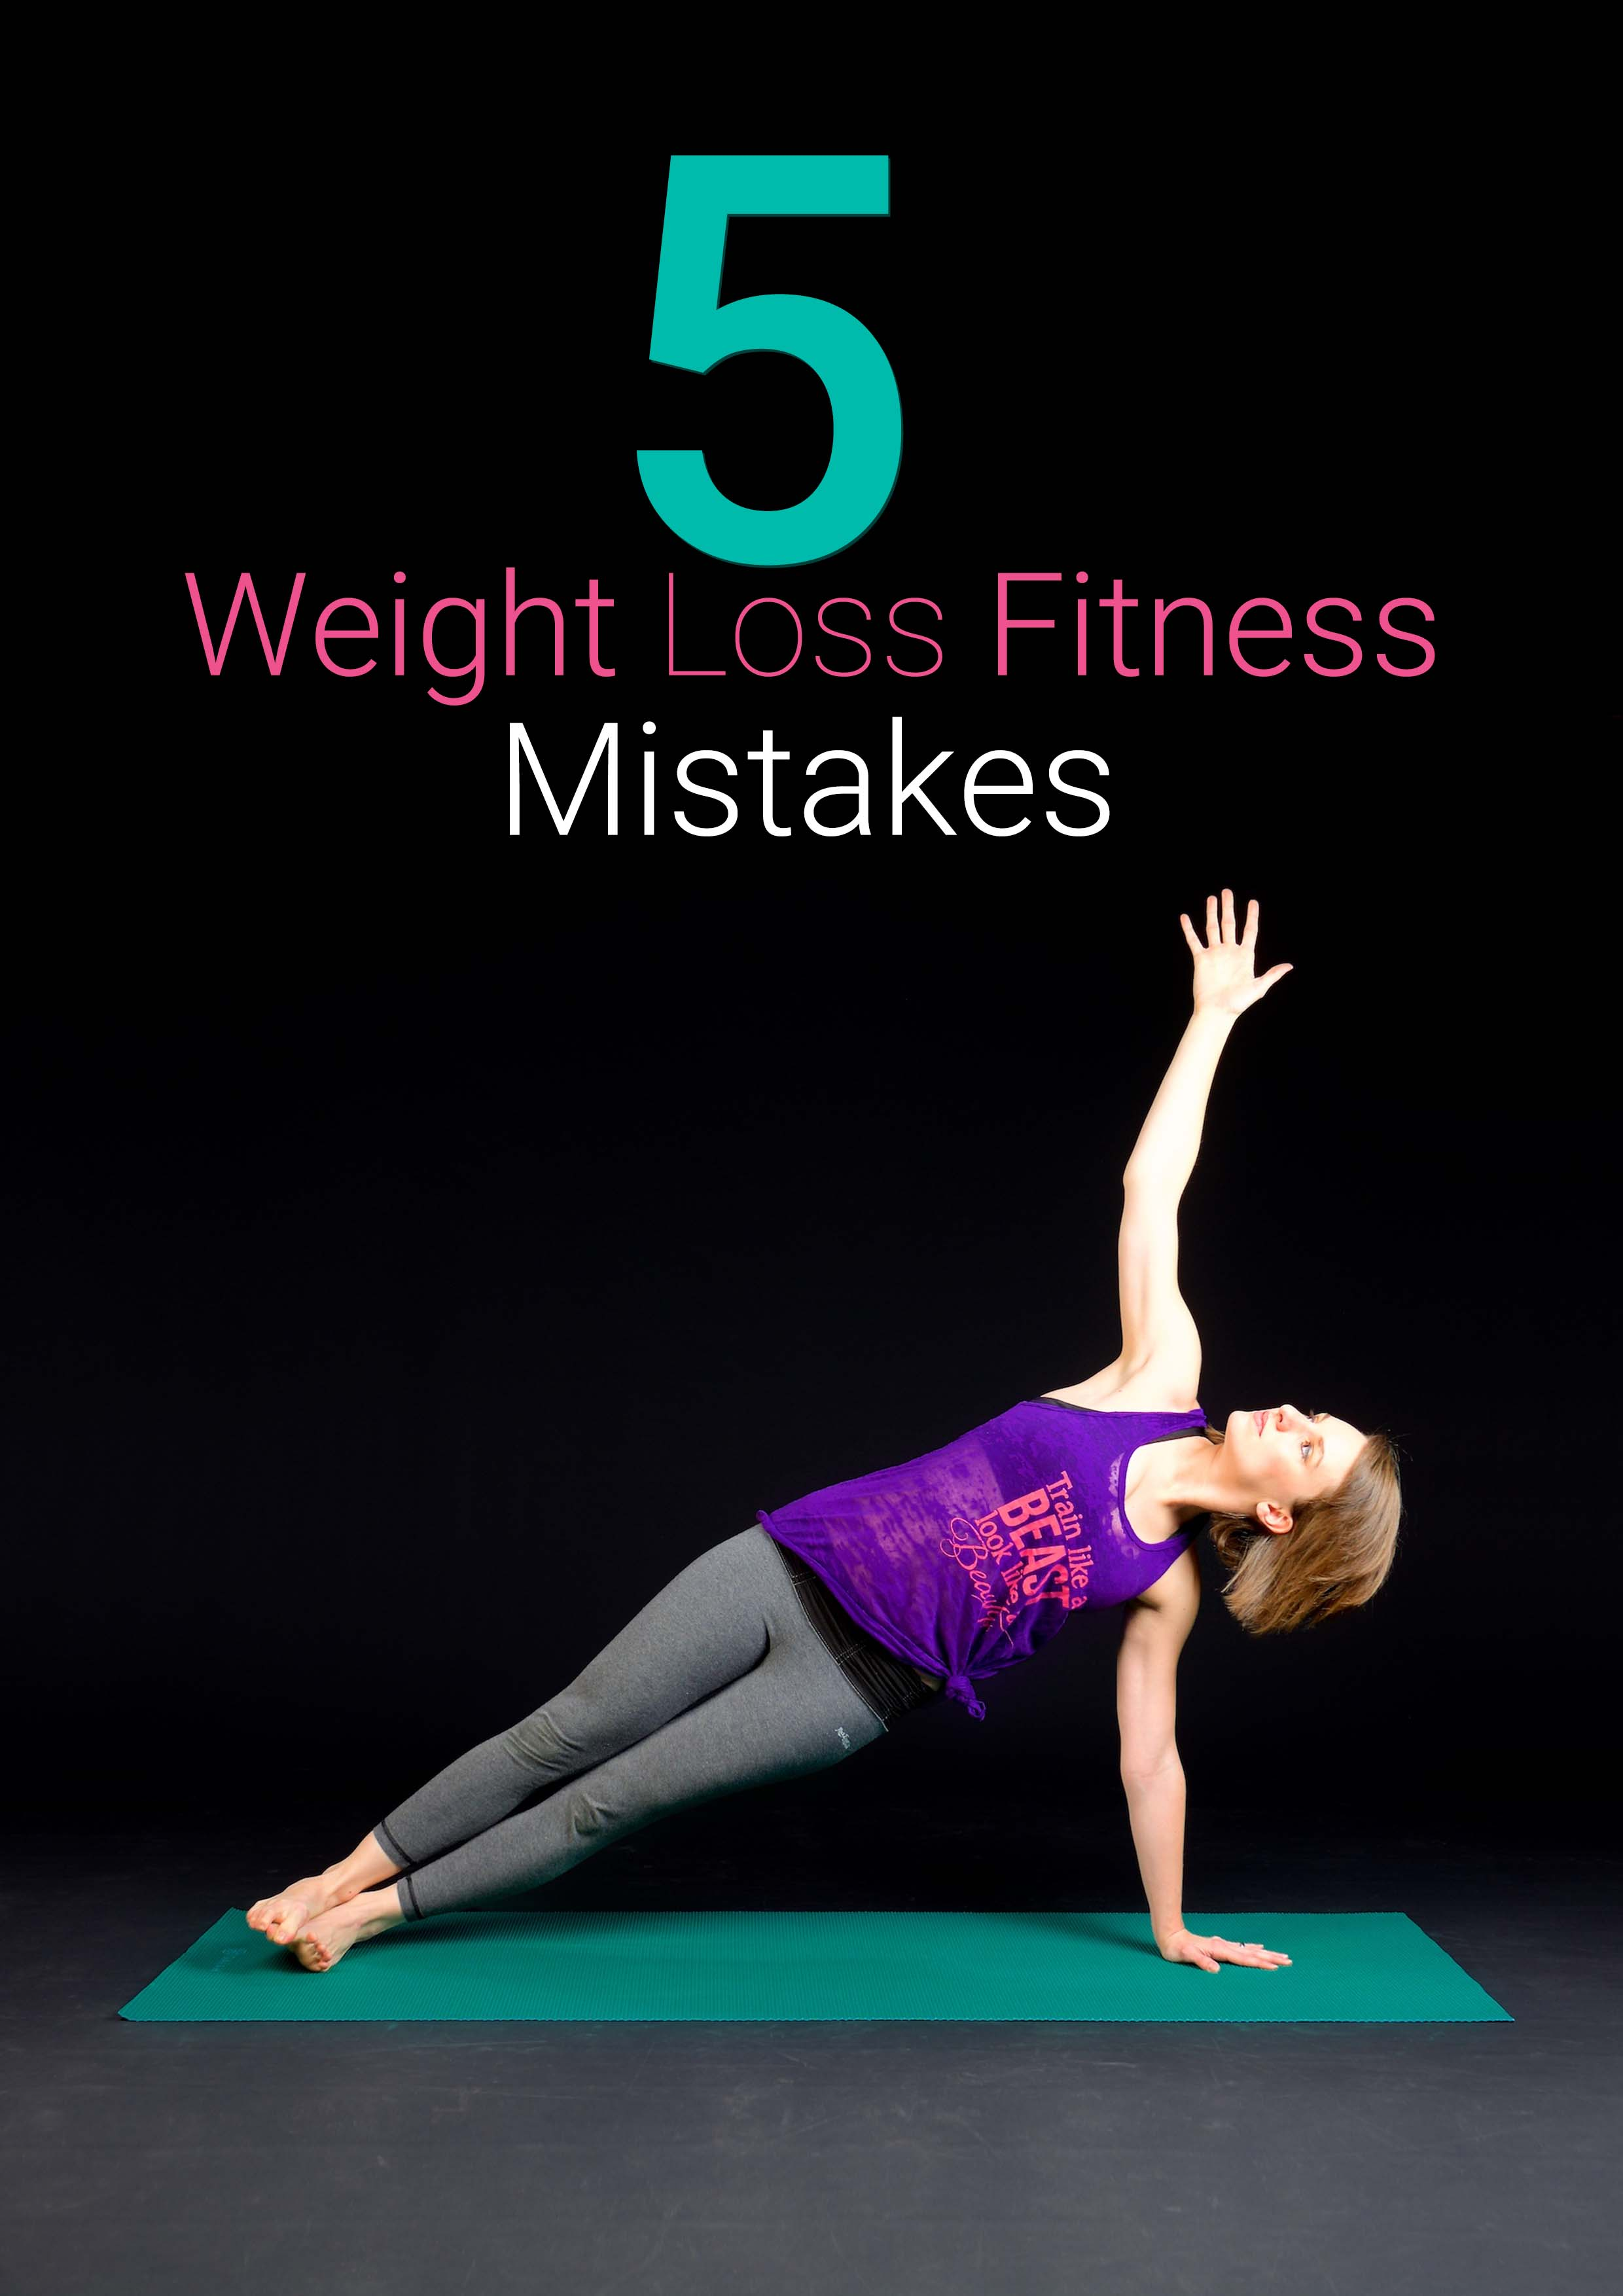 weight loss mistakes image